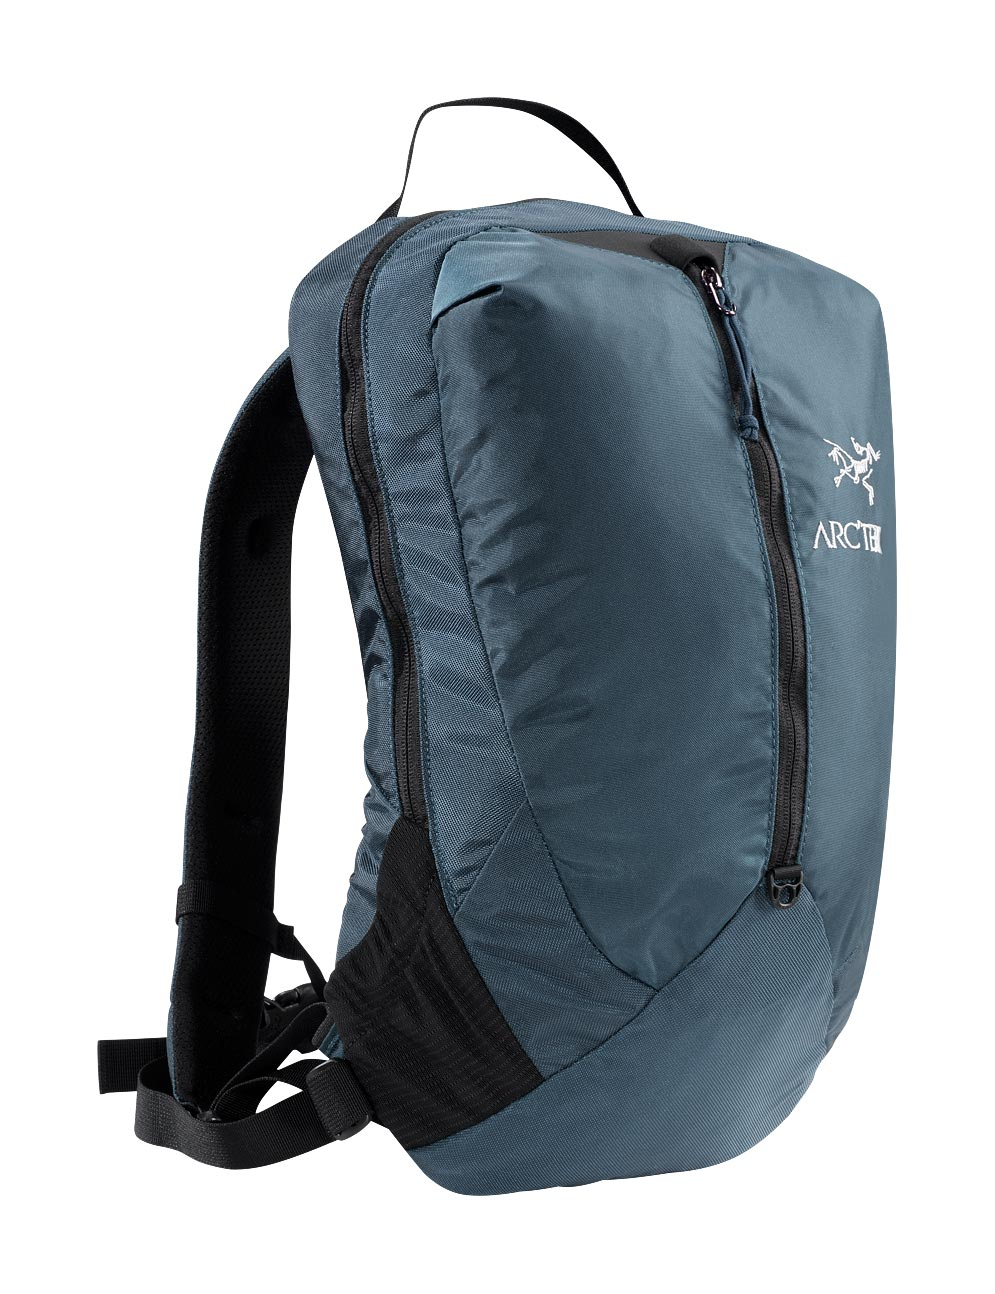 Arcteryx Nightshade Fly 14